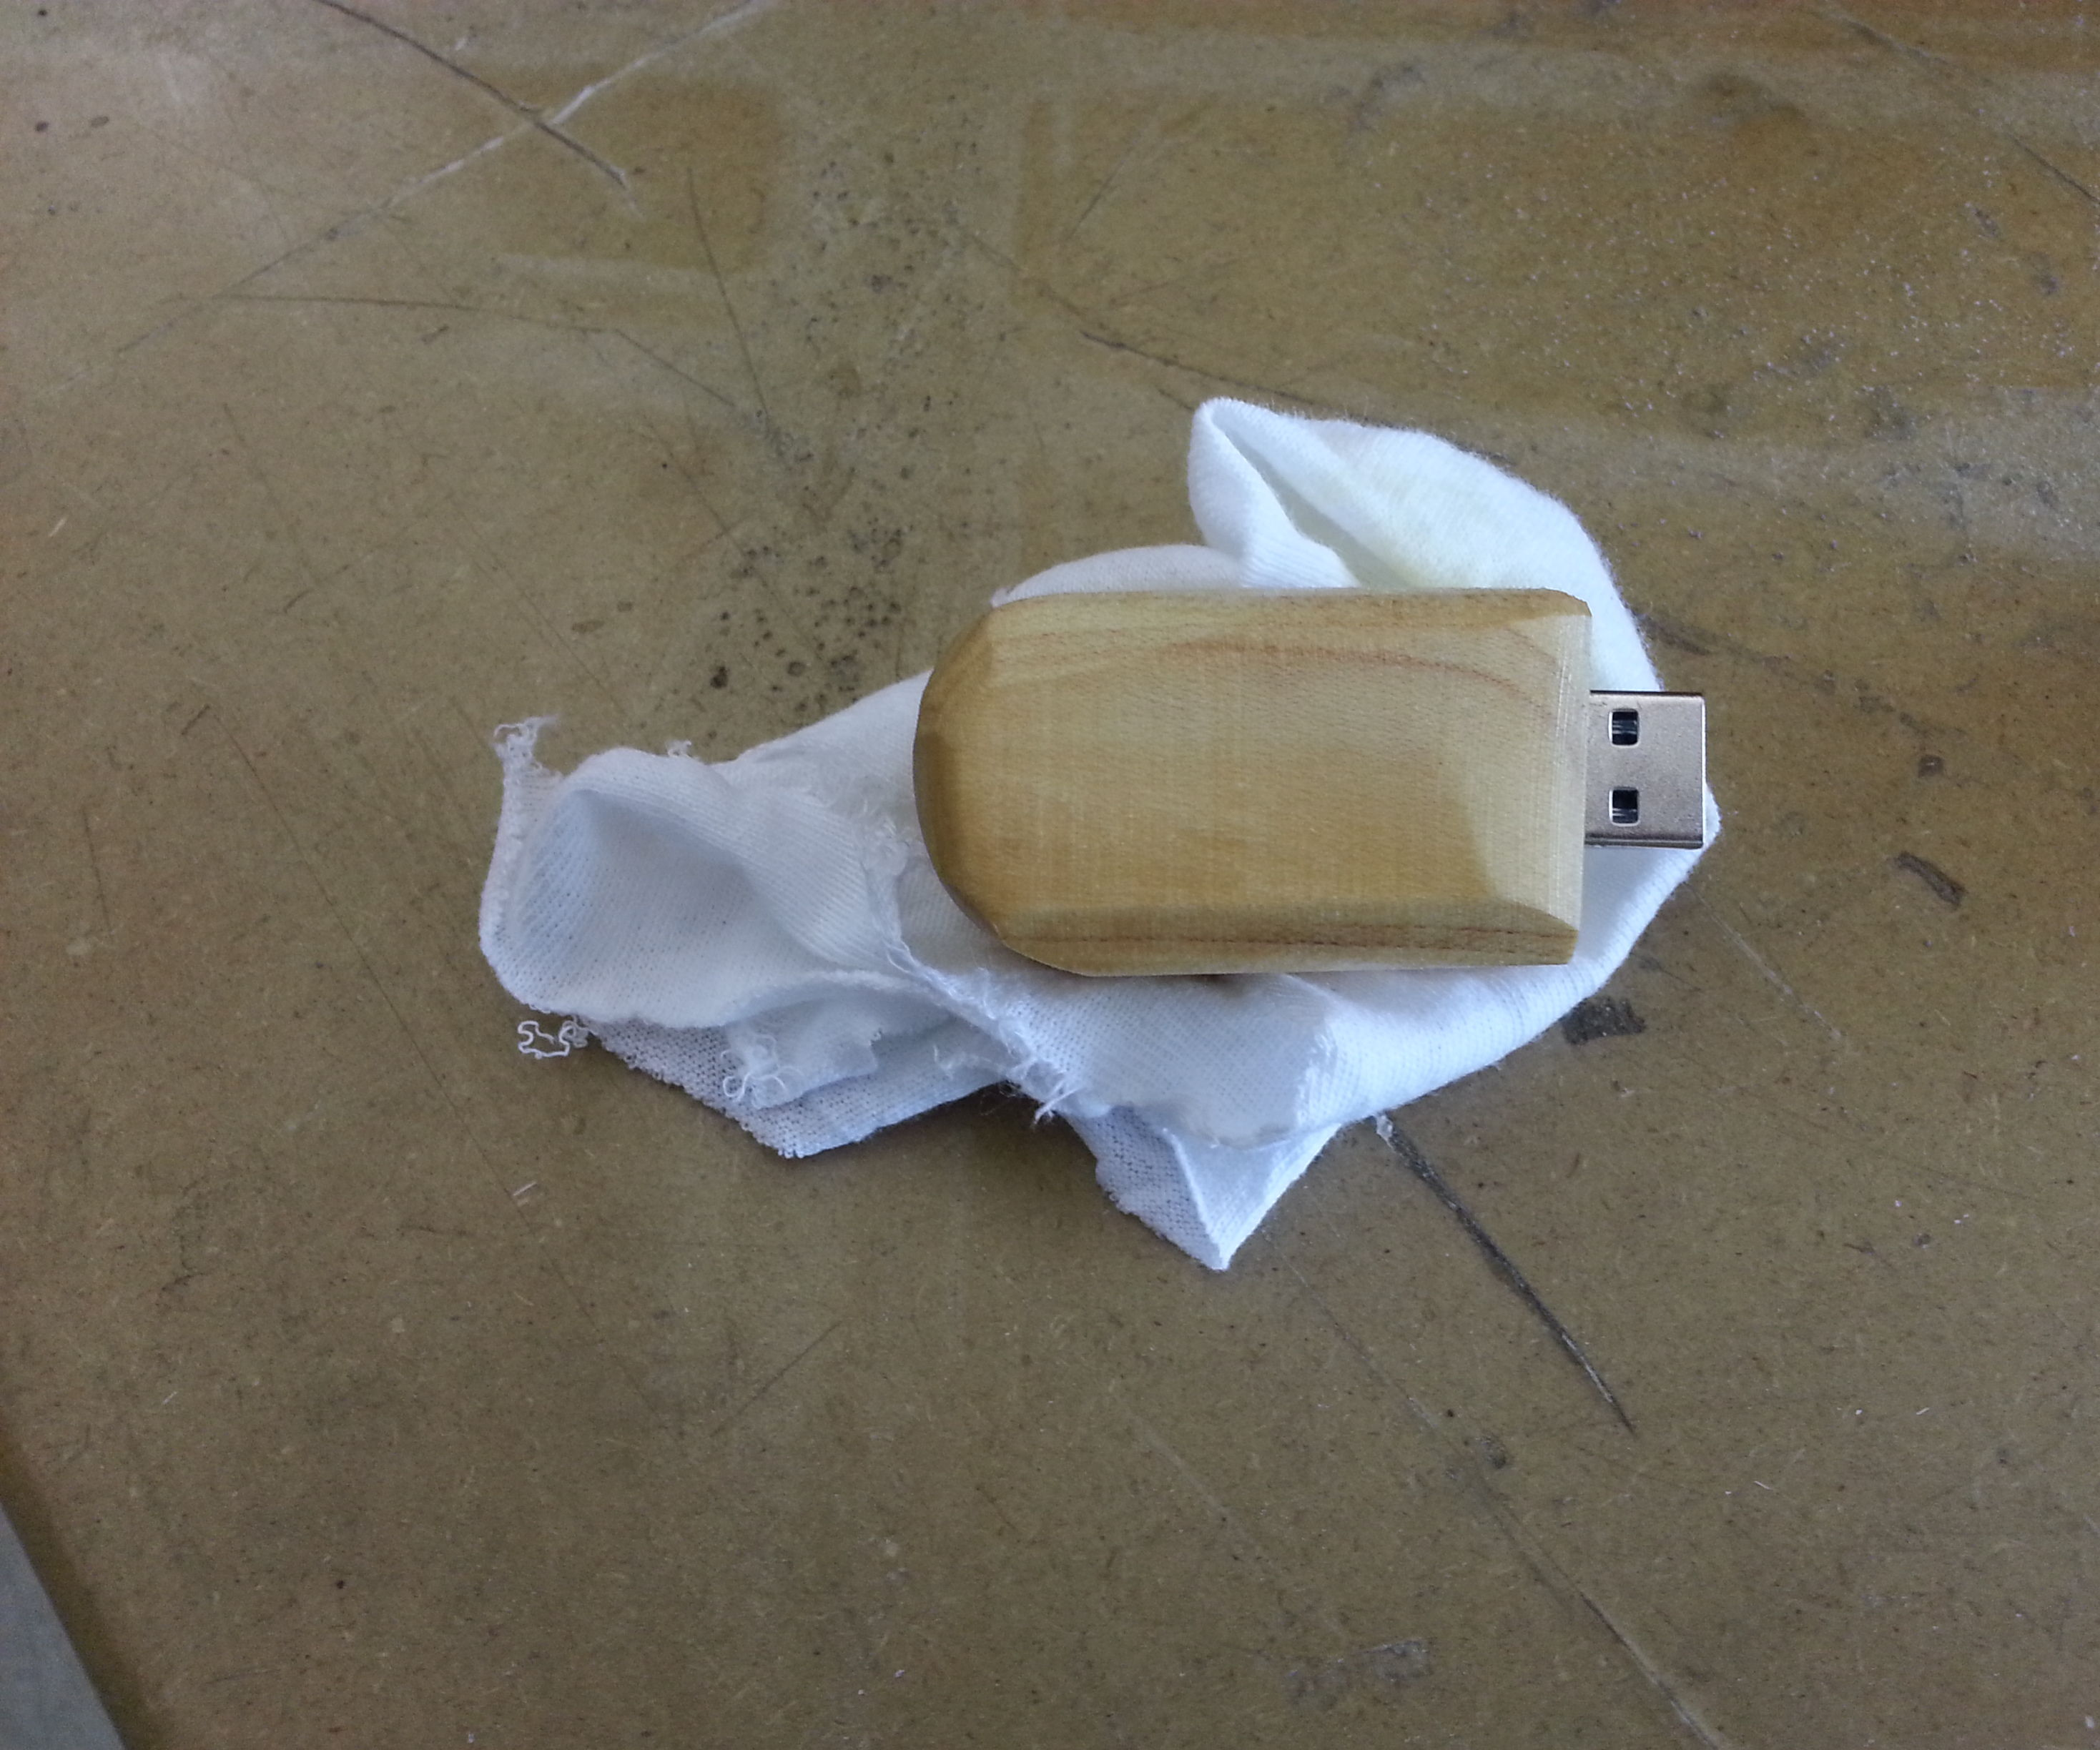 How to Make a Wooden Flash Drive